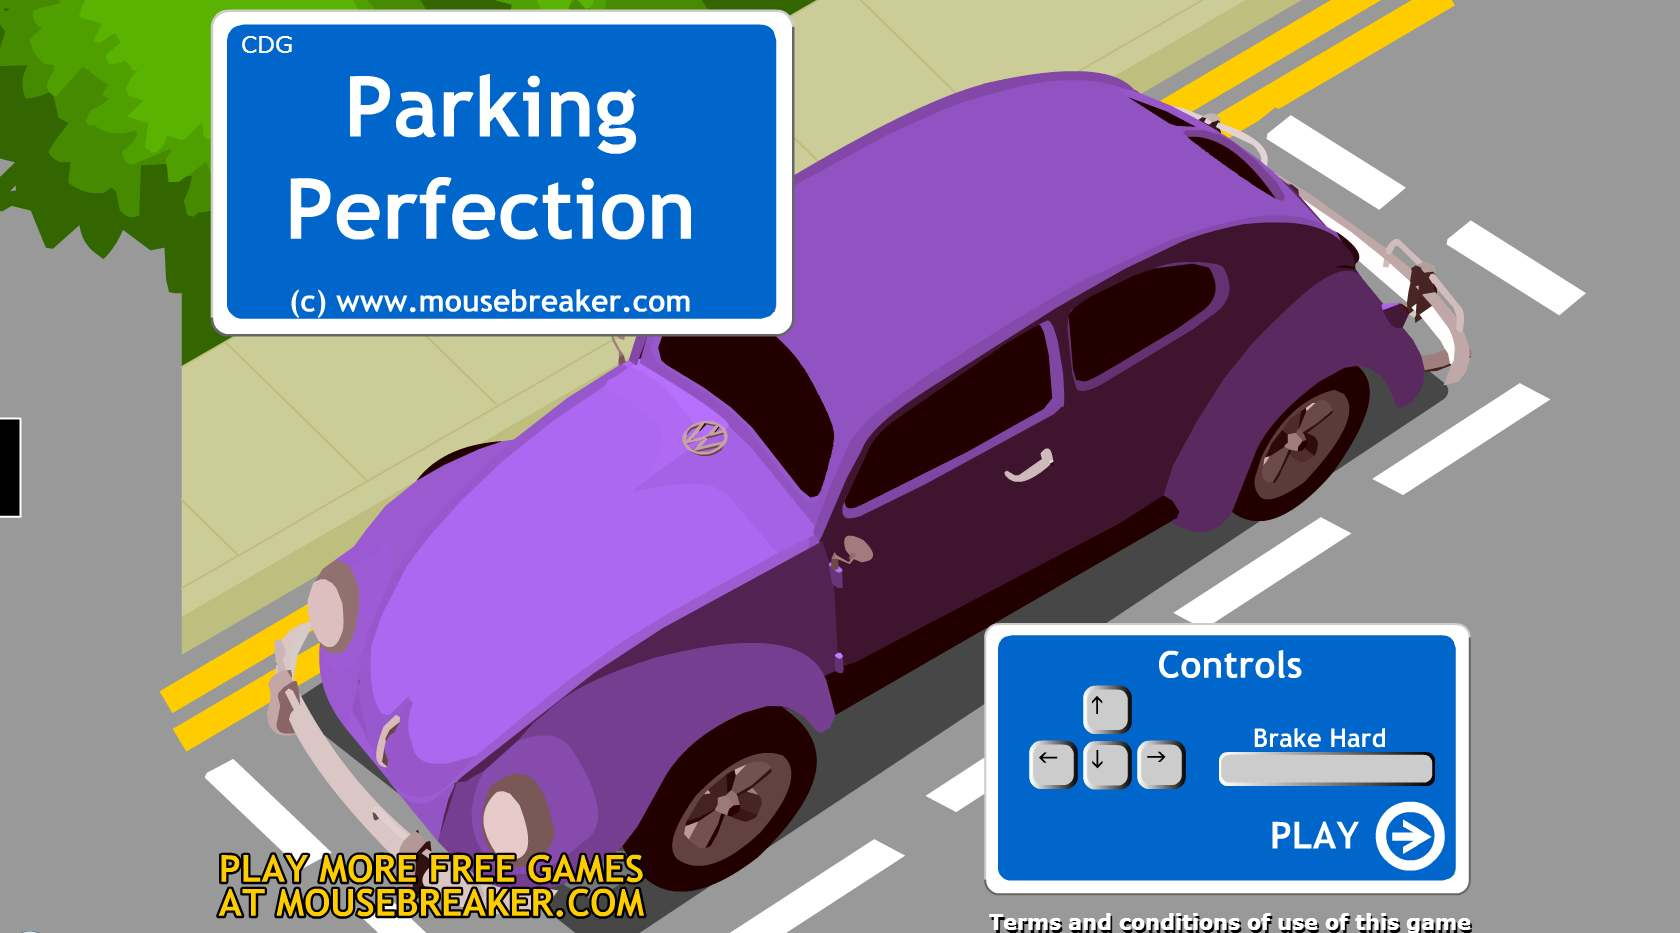 Parking Perfection with VW BeetleParking Perfection  with VW BeetleParking Perfection with VW BeetleParking Perfection with VW BeetleParking Perfection  with VW BeetleParking Perfection  with VW BeetleParking Perfection with VW BeetleParking Perfection  with VW Beetle